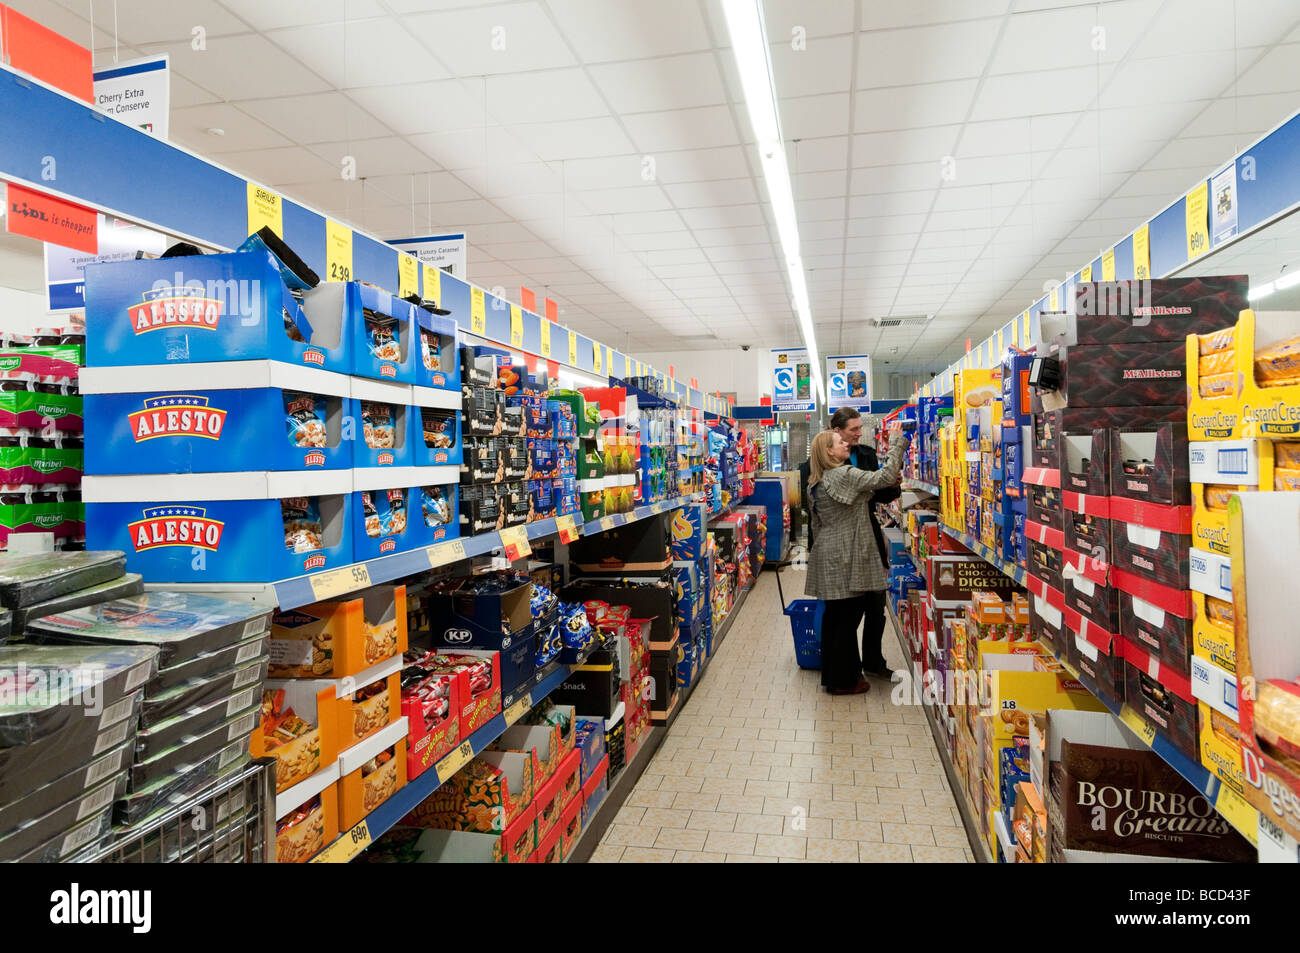 Shopping in Lidl supermarket, England UK - Stock Image